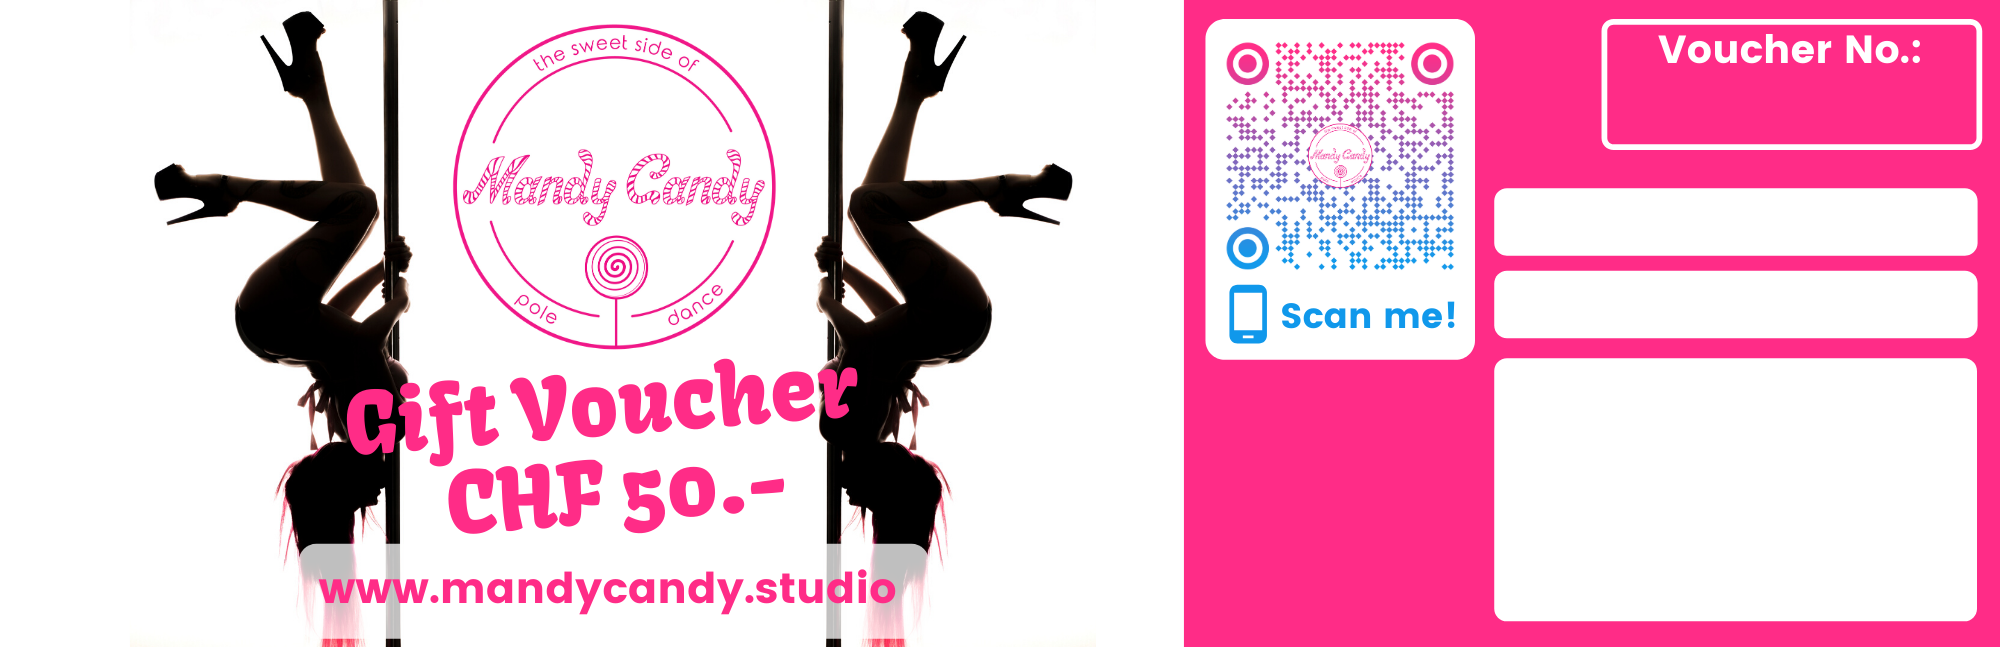 Gift vouchers Mandy Candy's pole dance studio